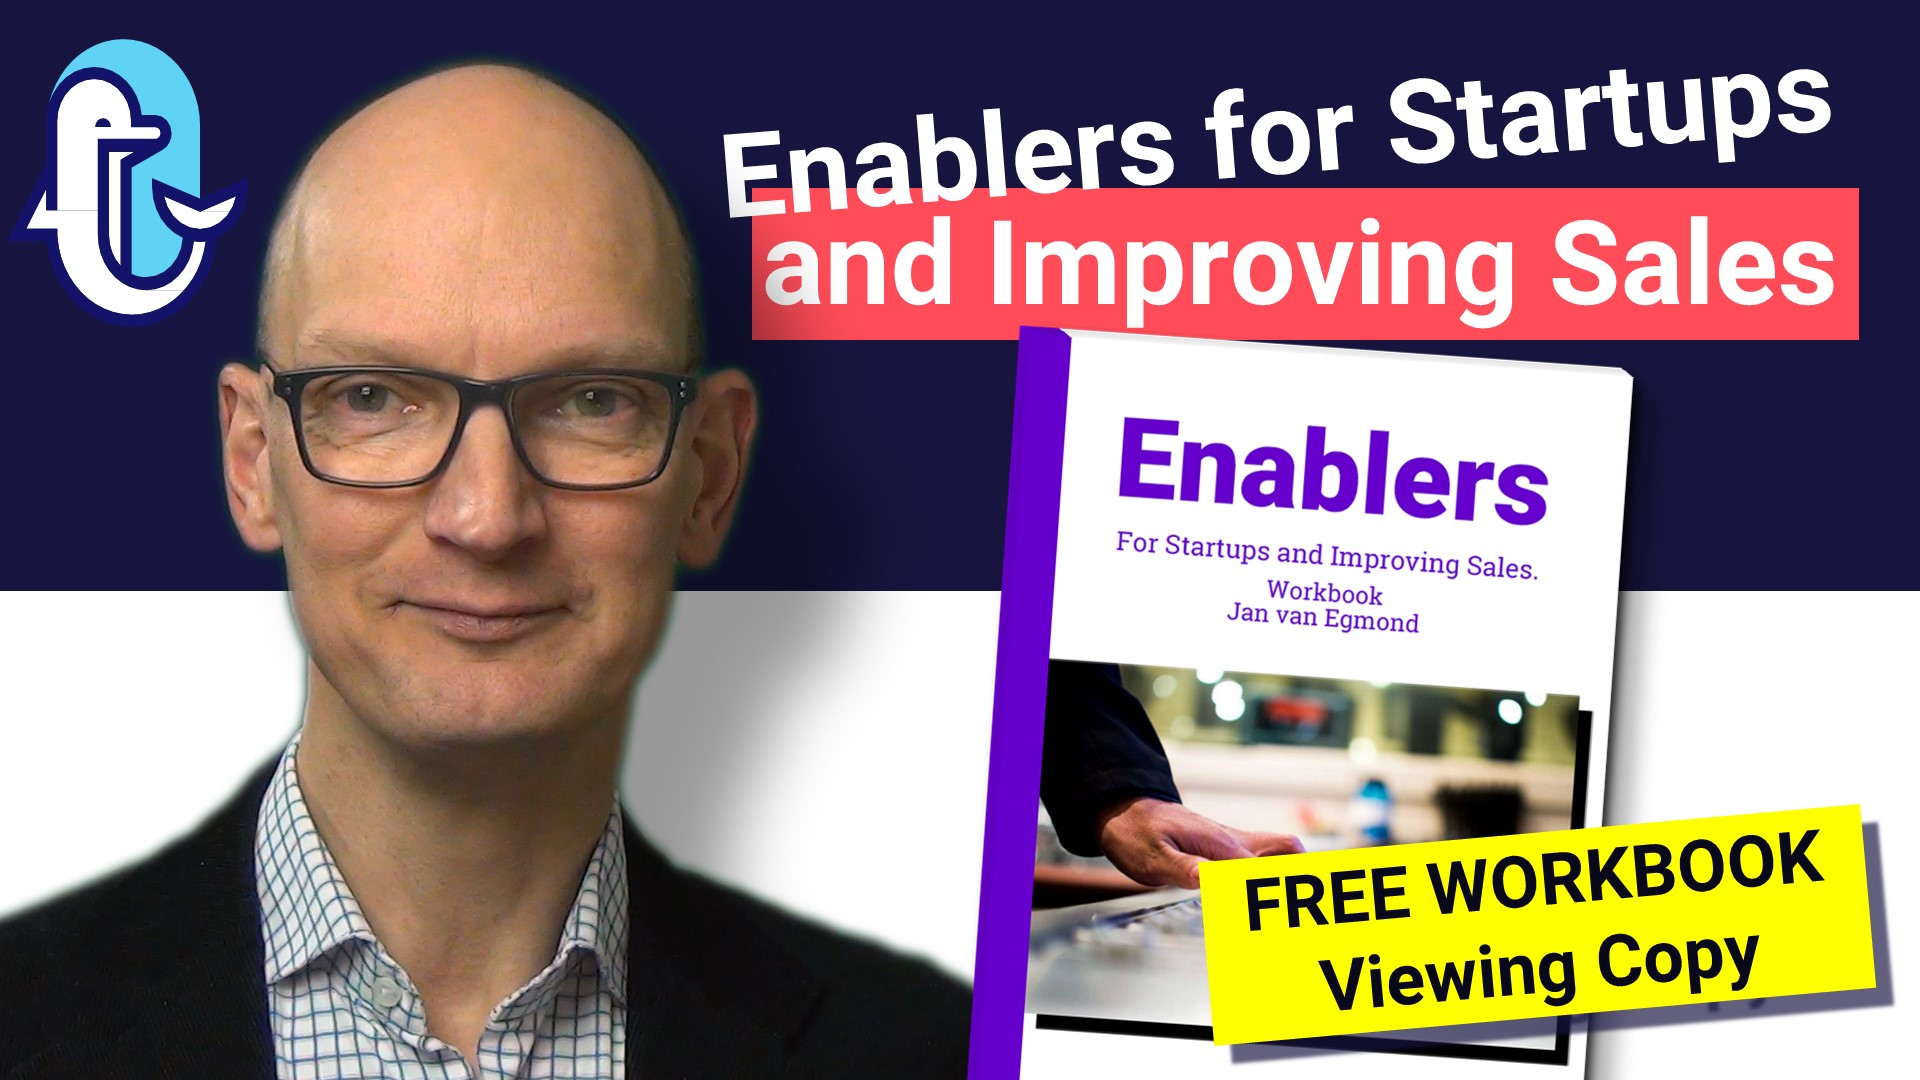 Enablers for Startups and Improving Sales